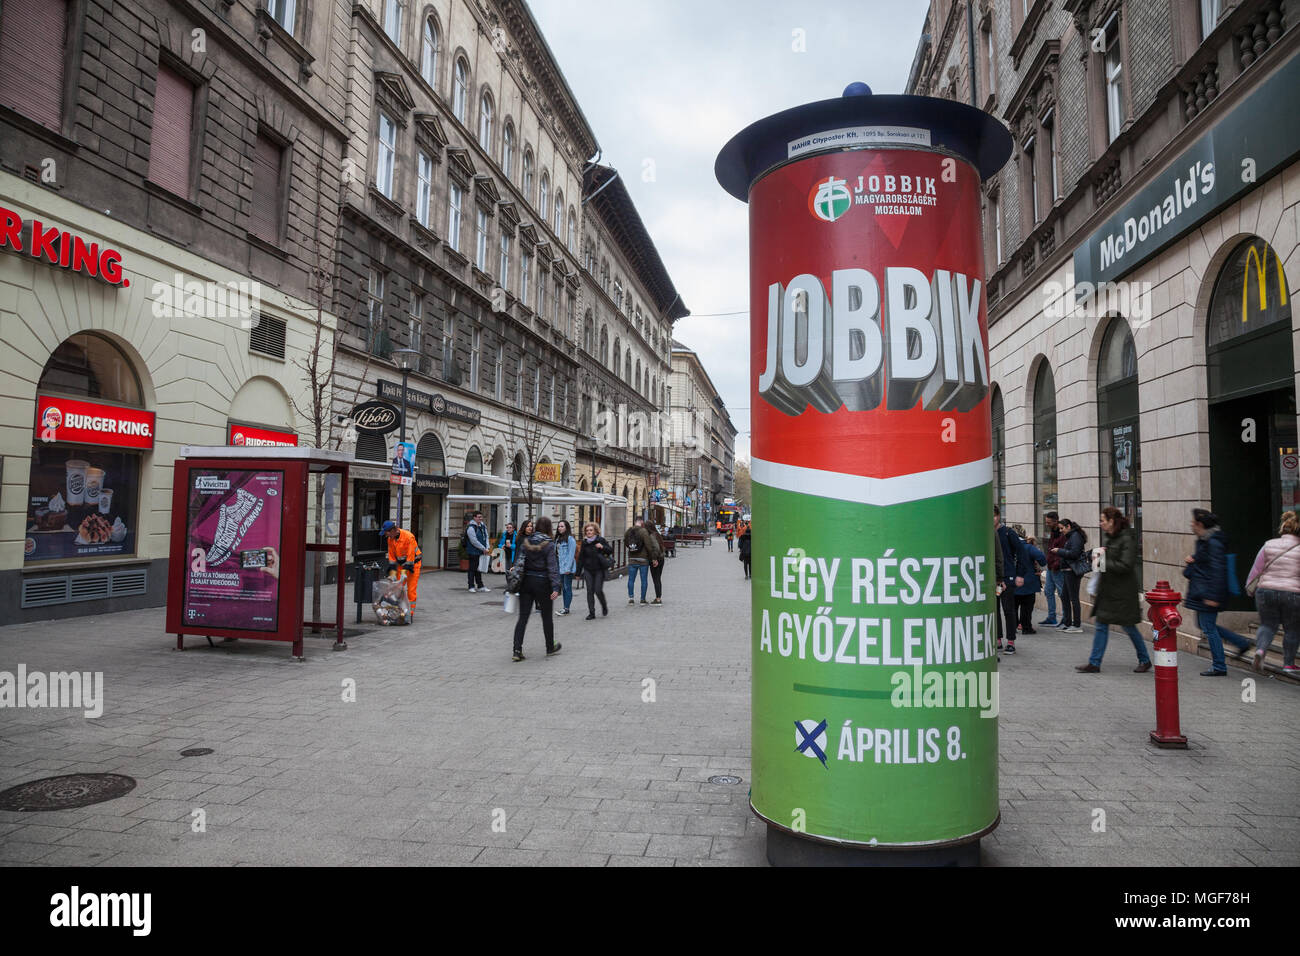 BUDAPEST, HUNGARY - APRIL 7, 2018: Jobbik electoral poster in the streets of Budapest for the parliamentary elections of 2018. Jobbik is the main extr - Stock Image